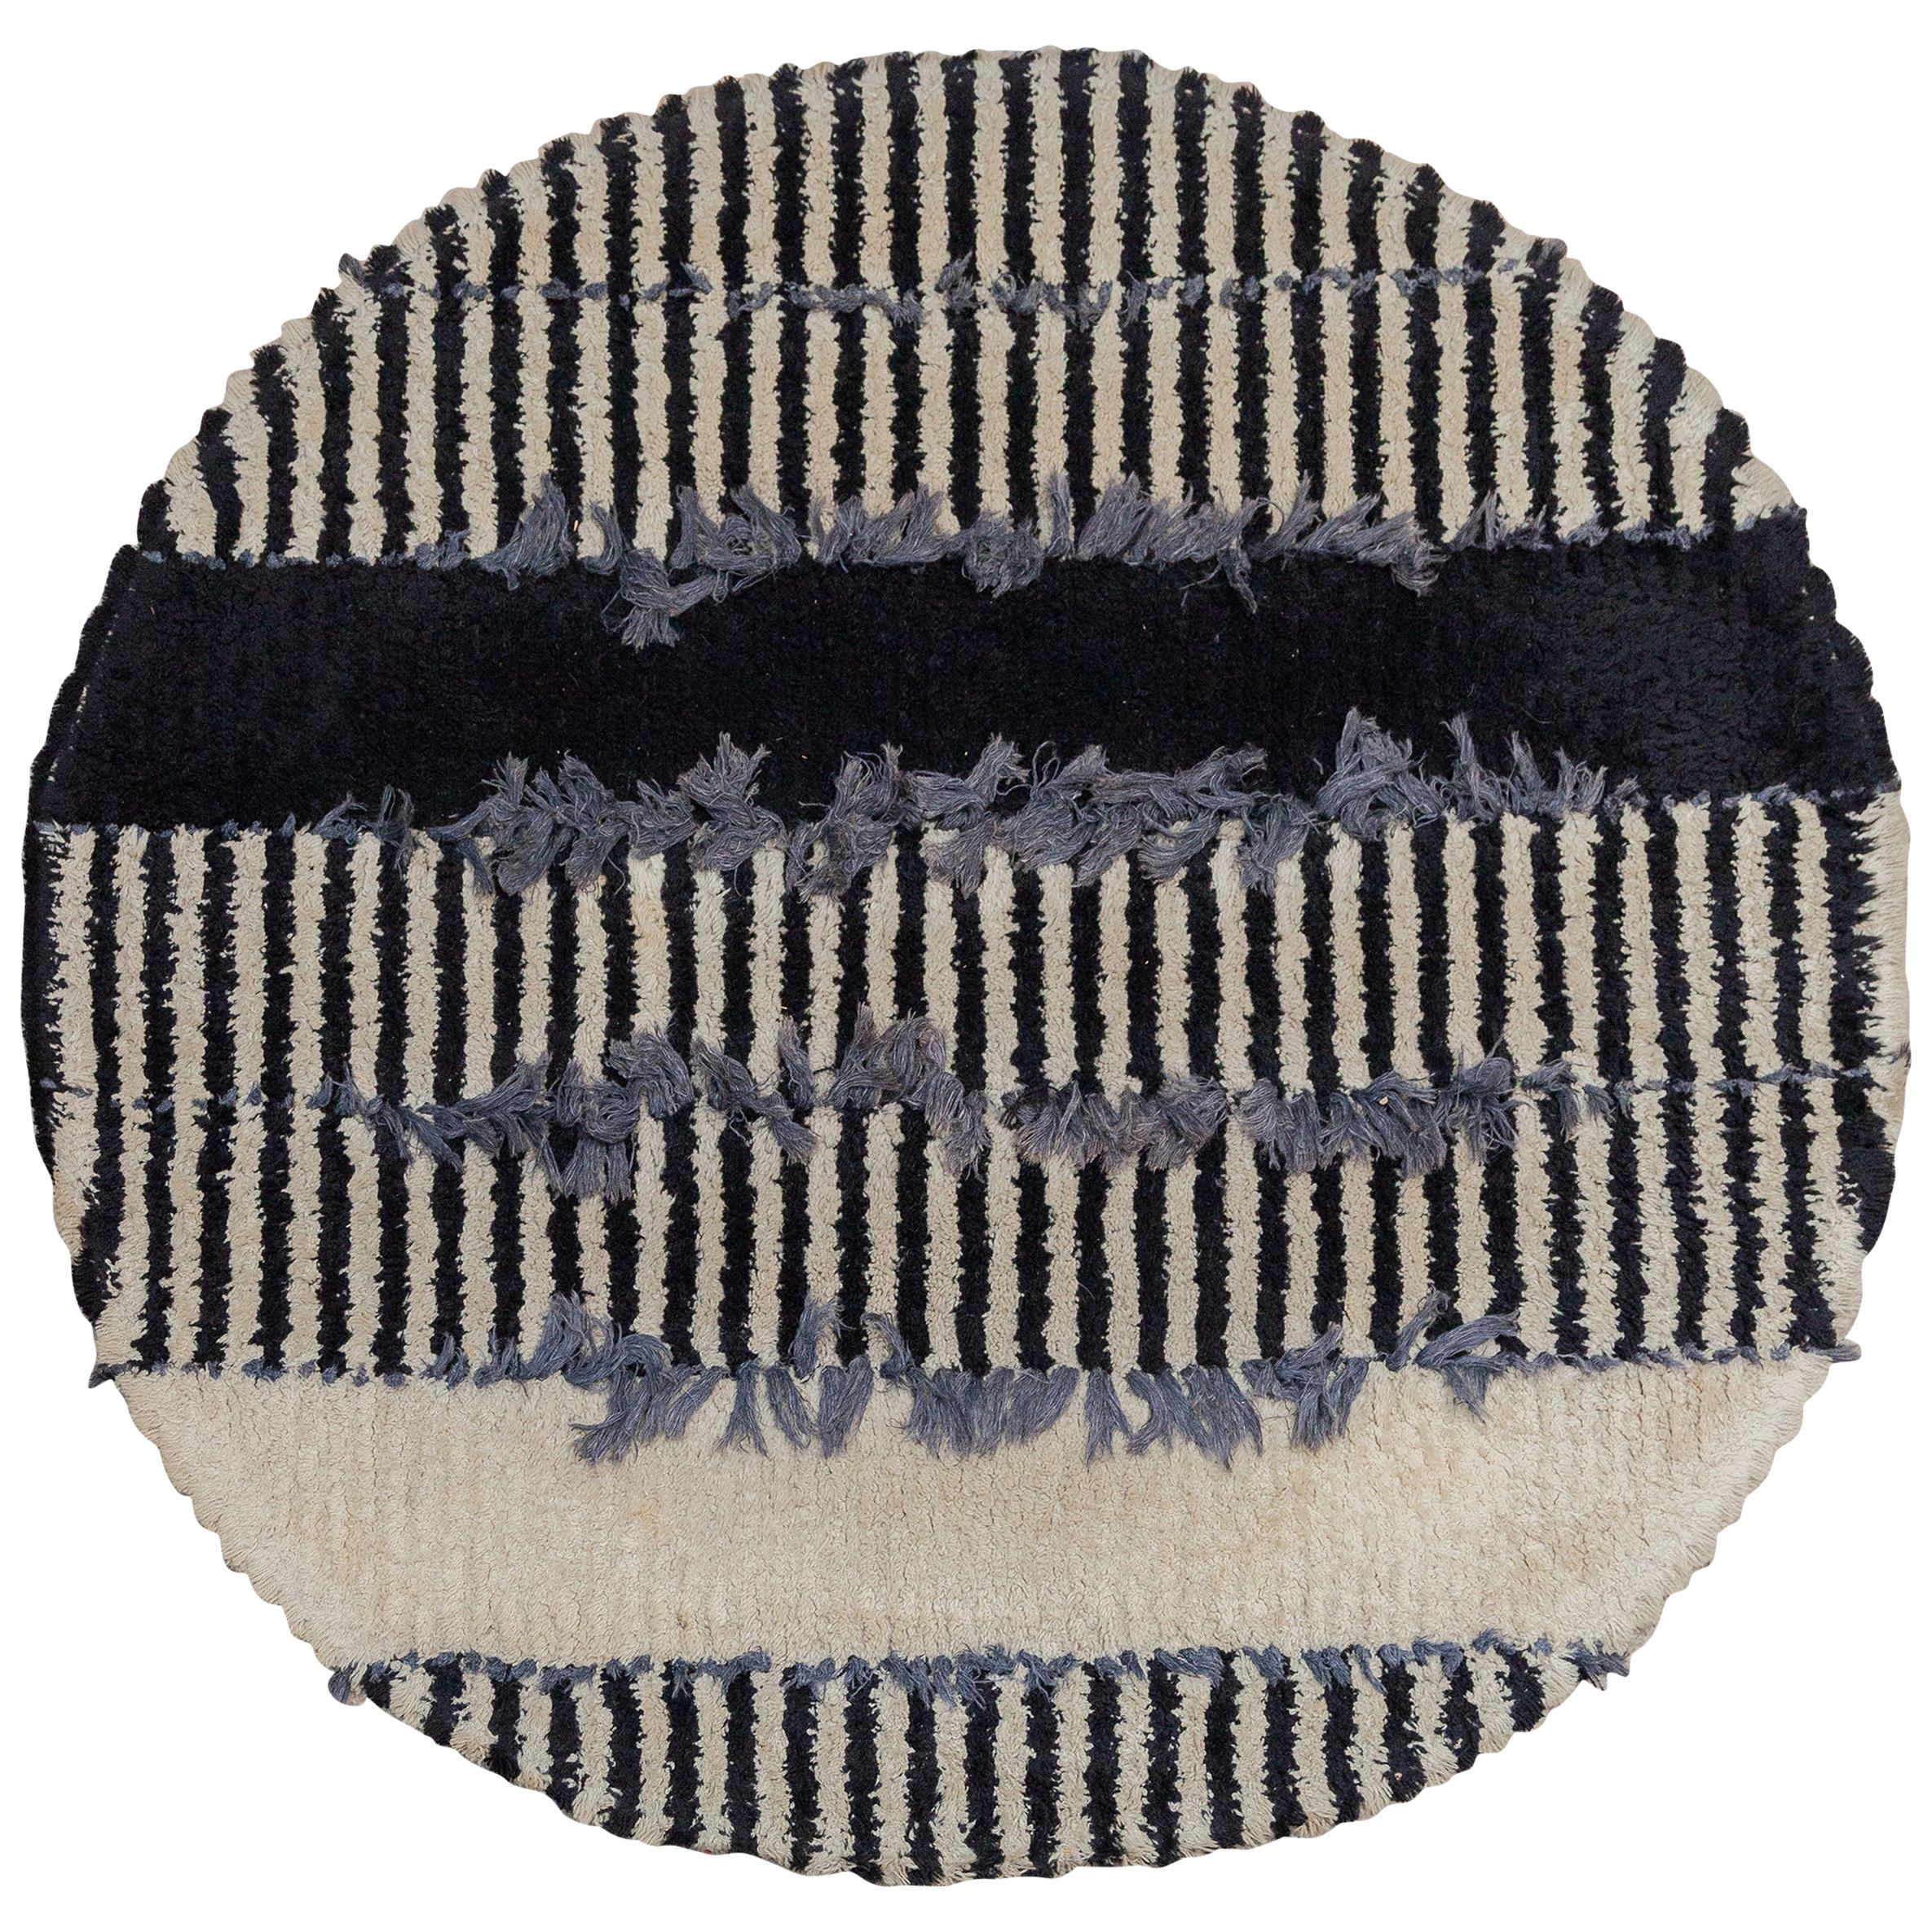 Op-Art Round Rya Black and White Rug Wall Hanging Carpet, 1960s, Sweden